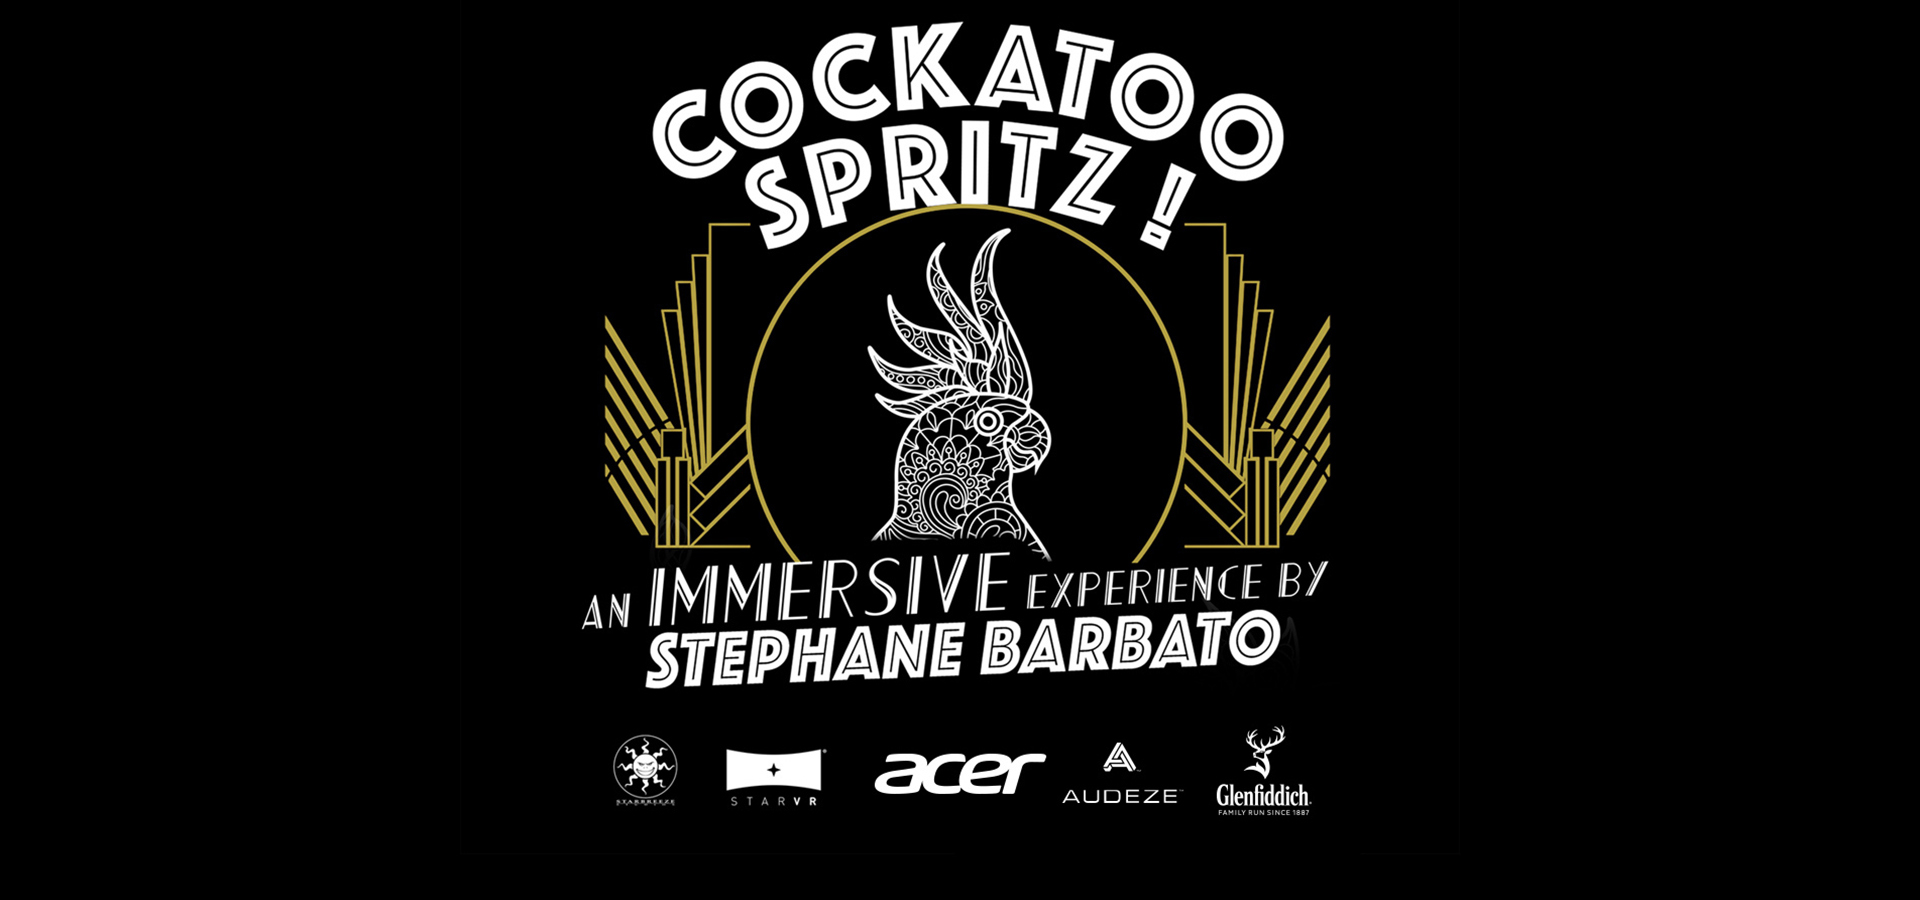 "Premiering the Cinematic VR-experiene ""Cockatoo Spritz"" at Cannes May 11-20"